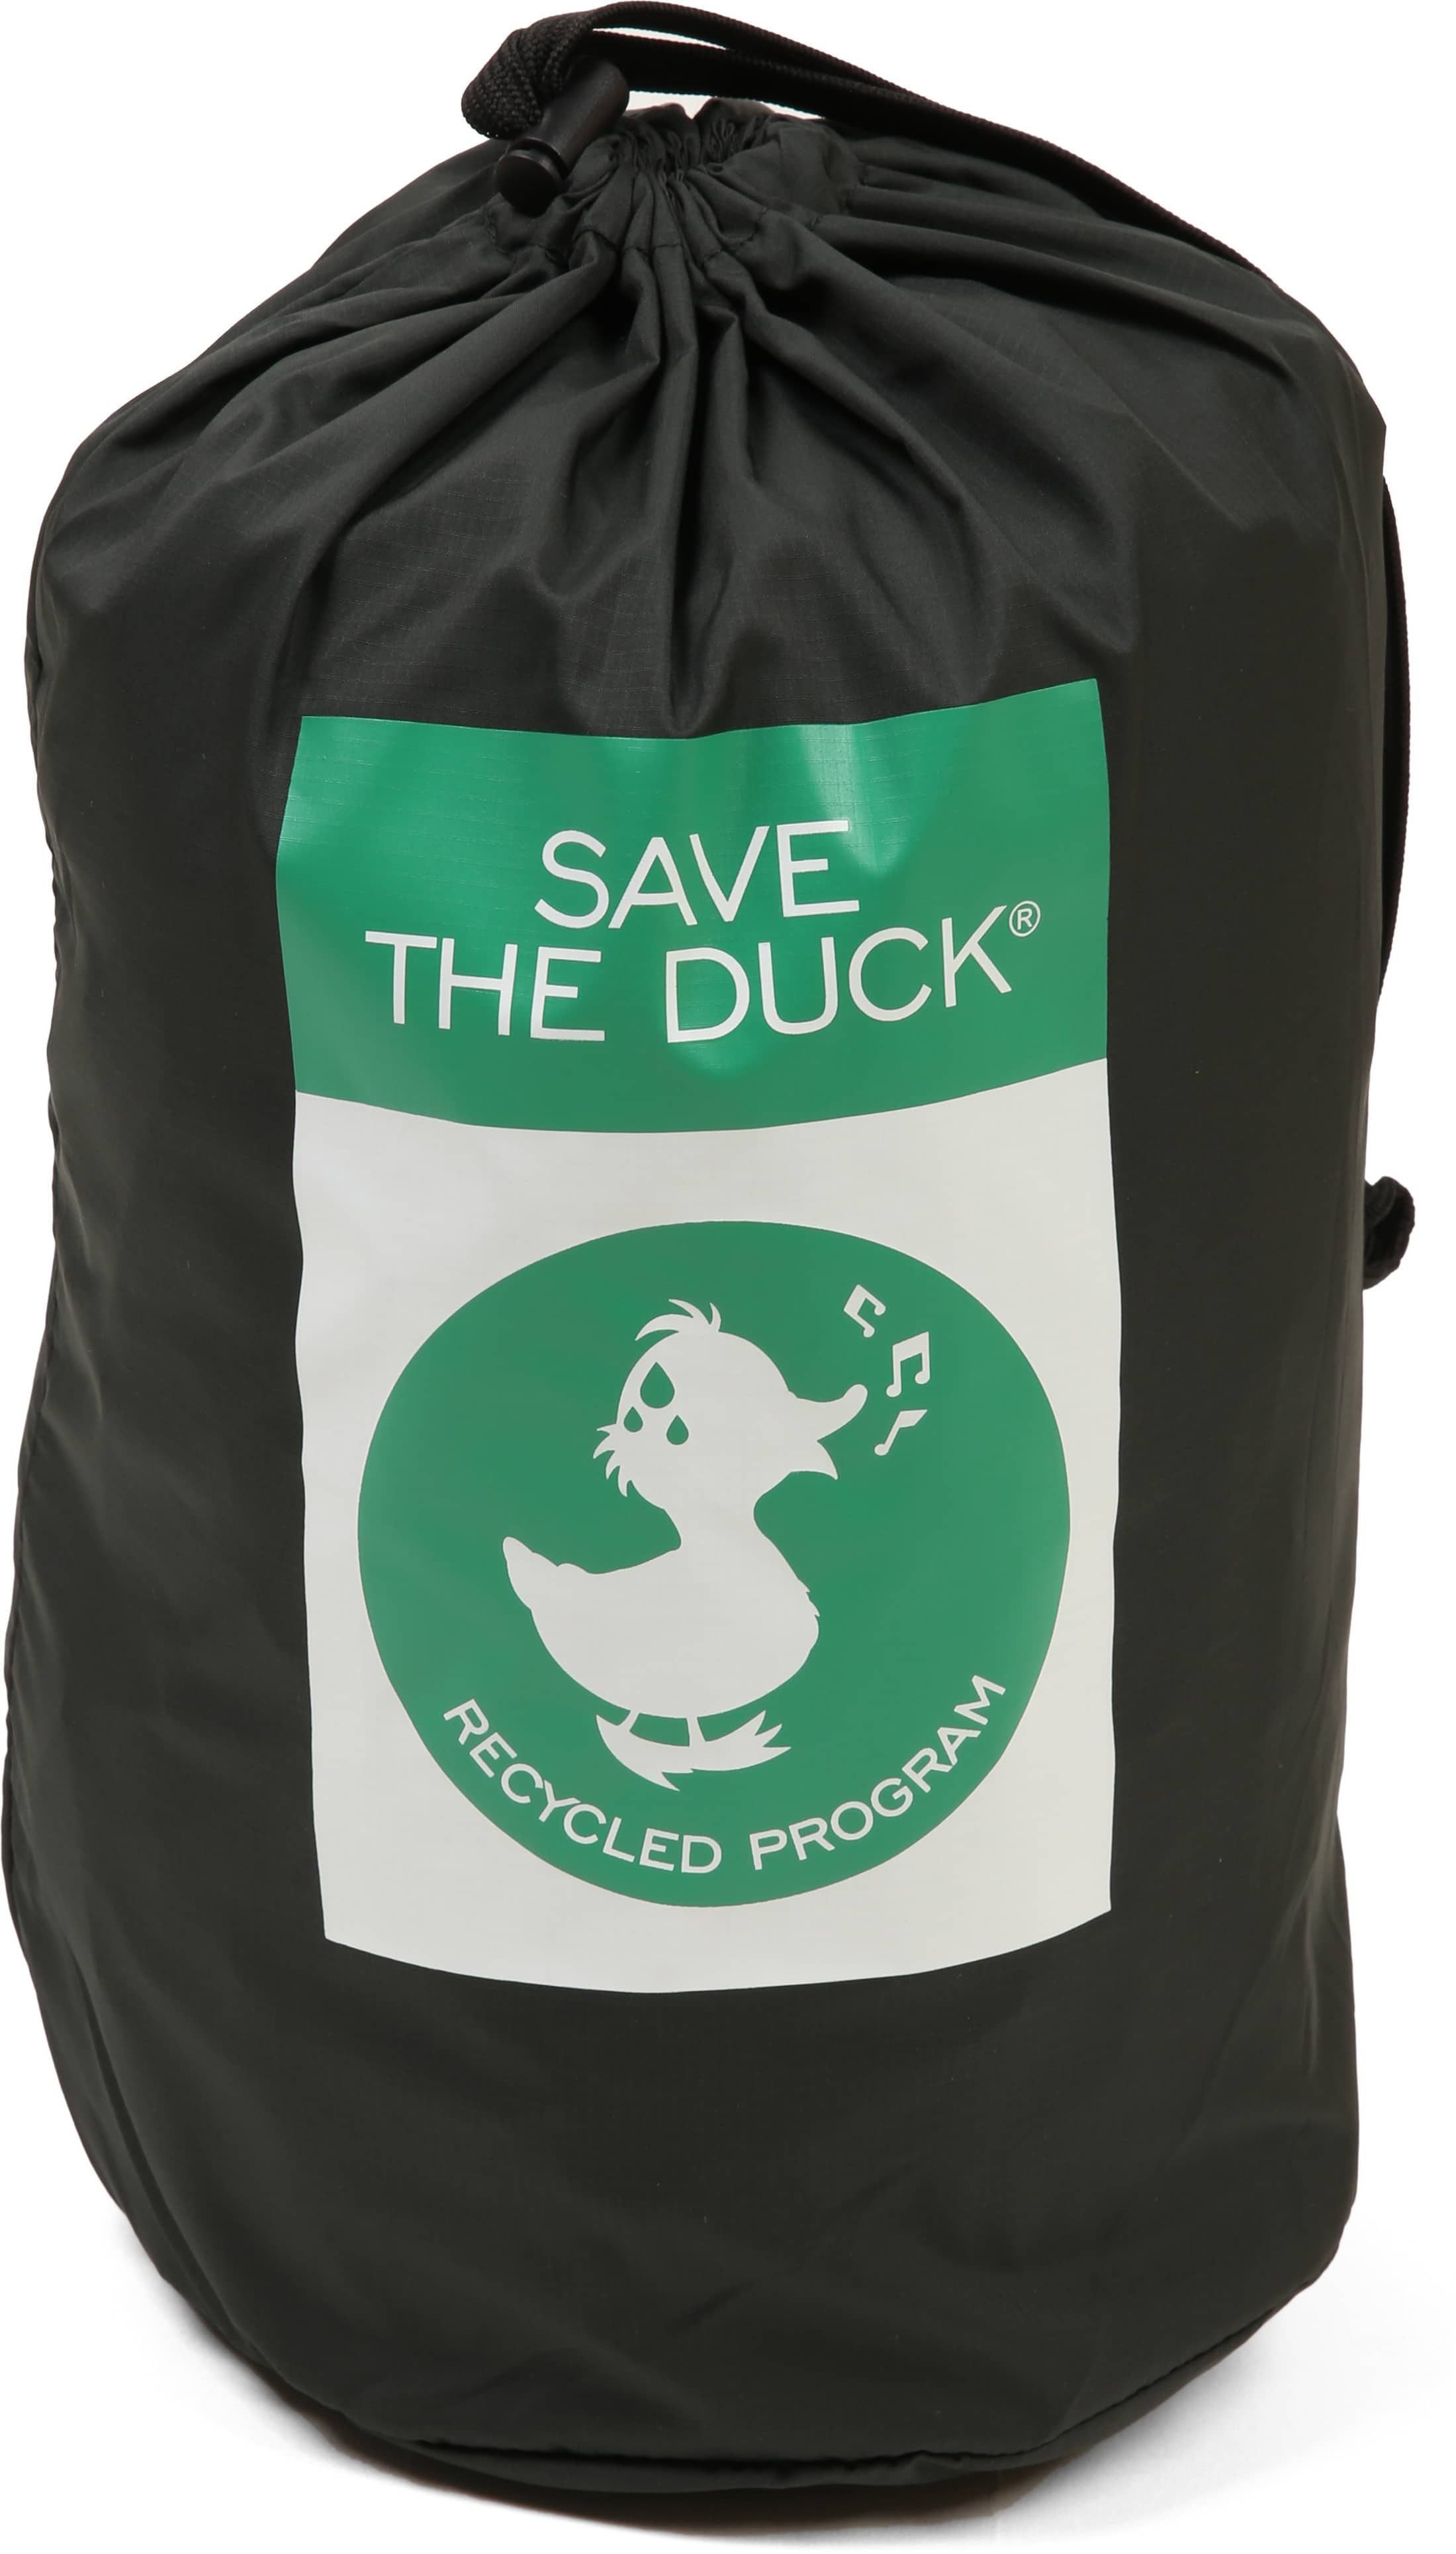 Save the Duck Jack Taglia Revers foto 11